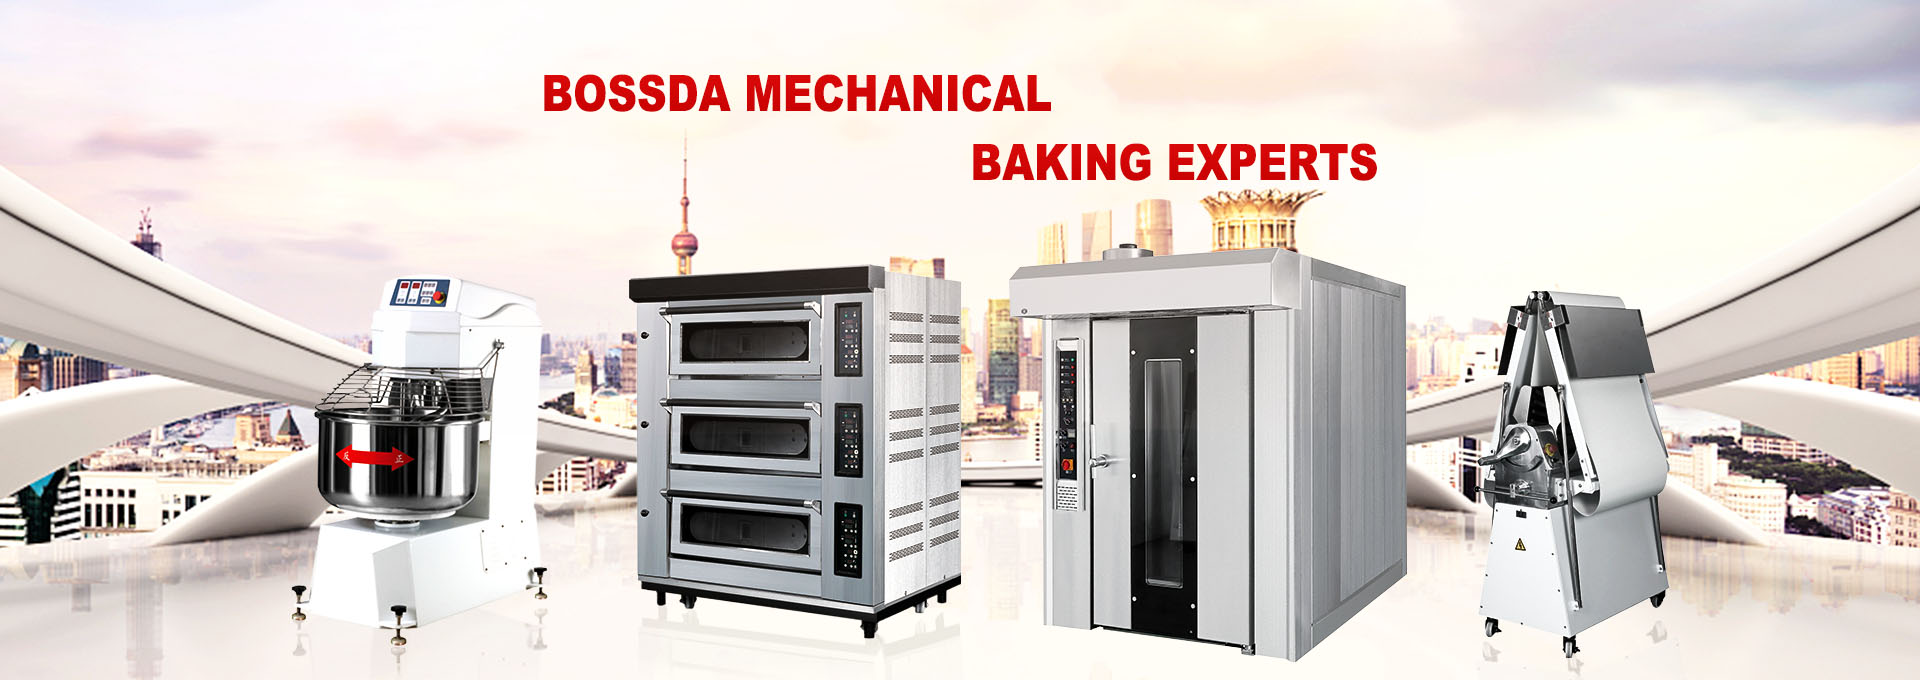 China cake production line, bakery equipment, rack oven